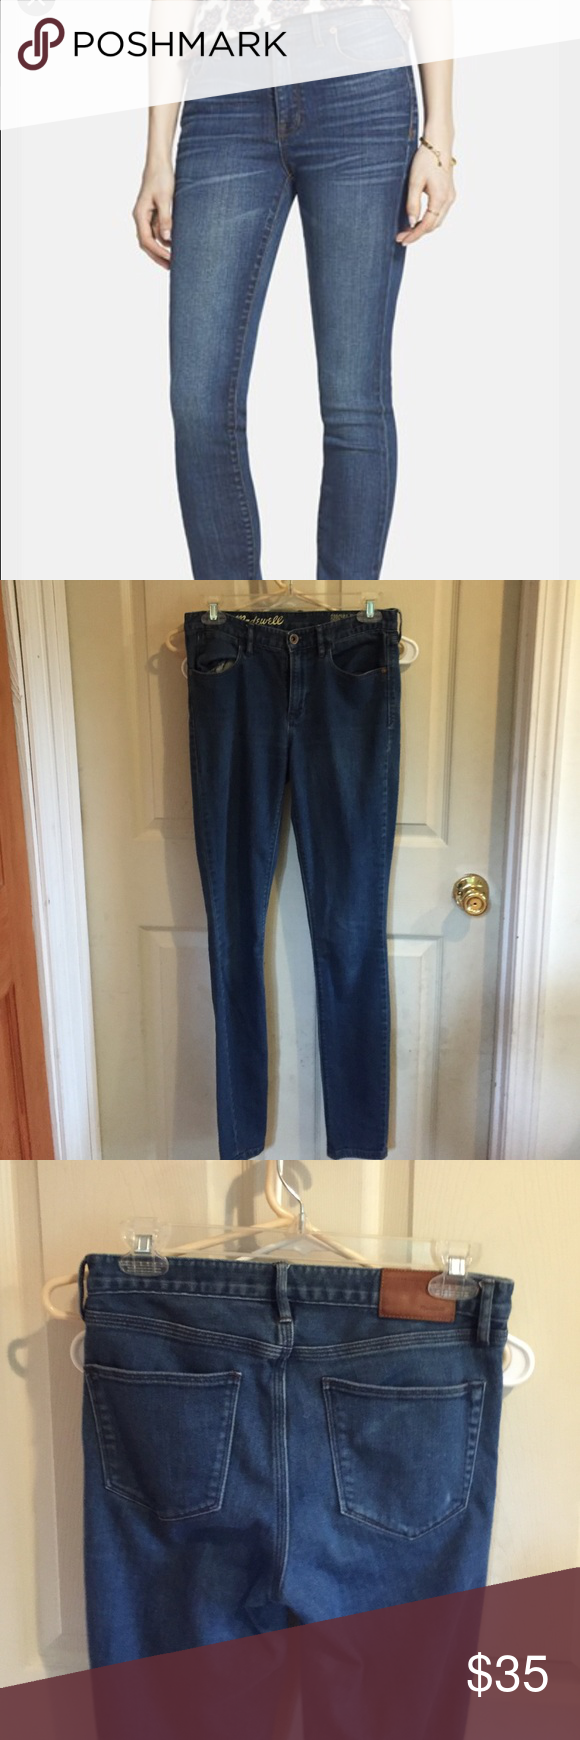 "Madewell High Riser Skinny Jeans 26"" x 32"". Cotton/polyester. The cover photo shows the fit, but these are a slightly different wash. Waist is about 15"" flat no dip; rise is about 9""; inseam is about 32""; ankle is about 5"" flat. Gently worn with some light fuzzing. Madewell Jeans Skinny"